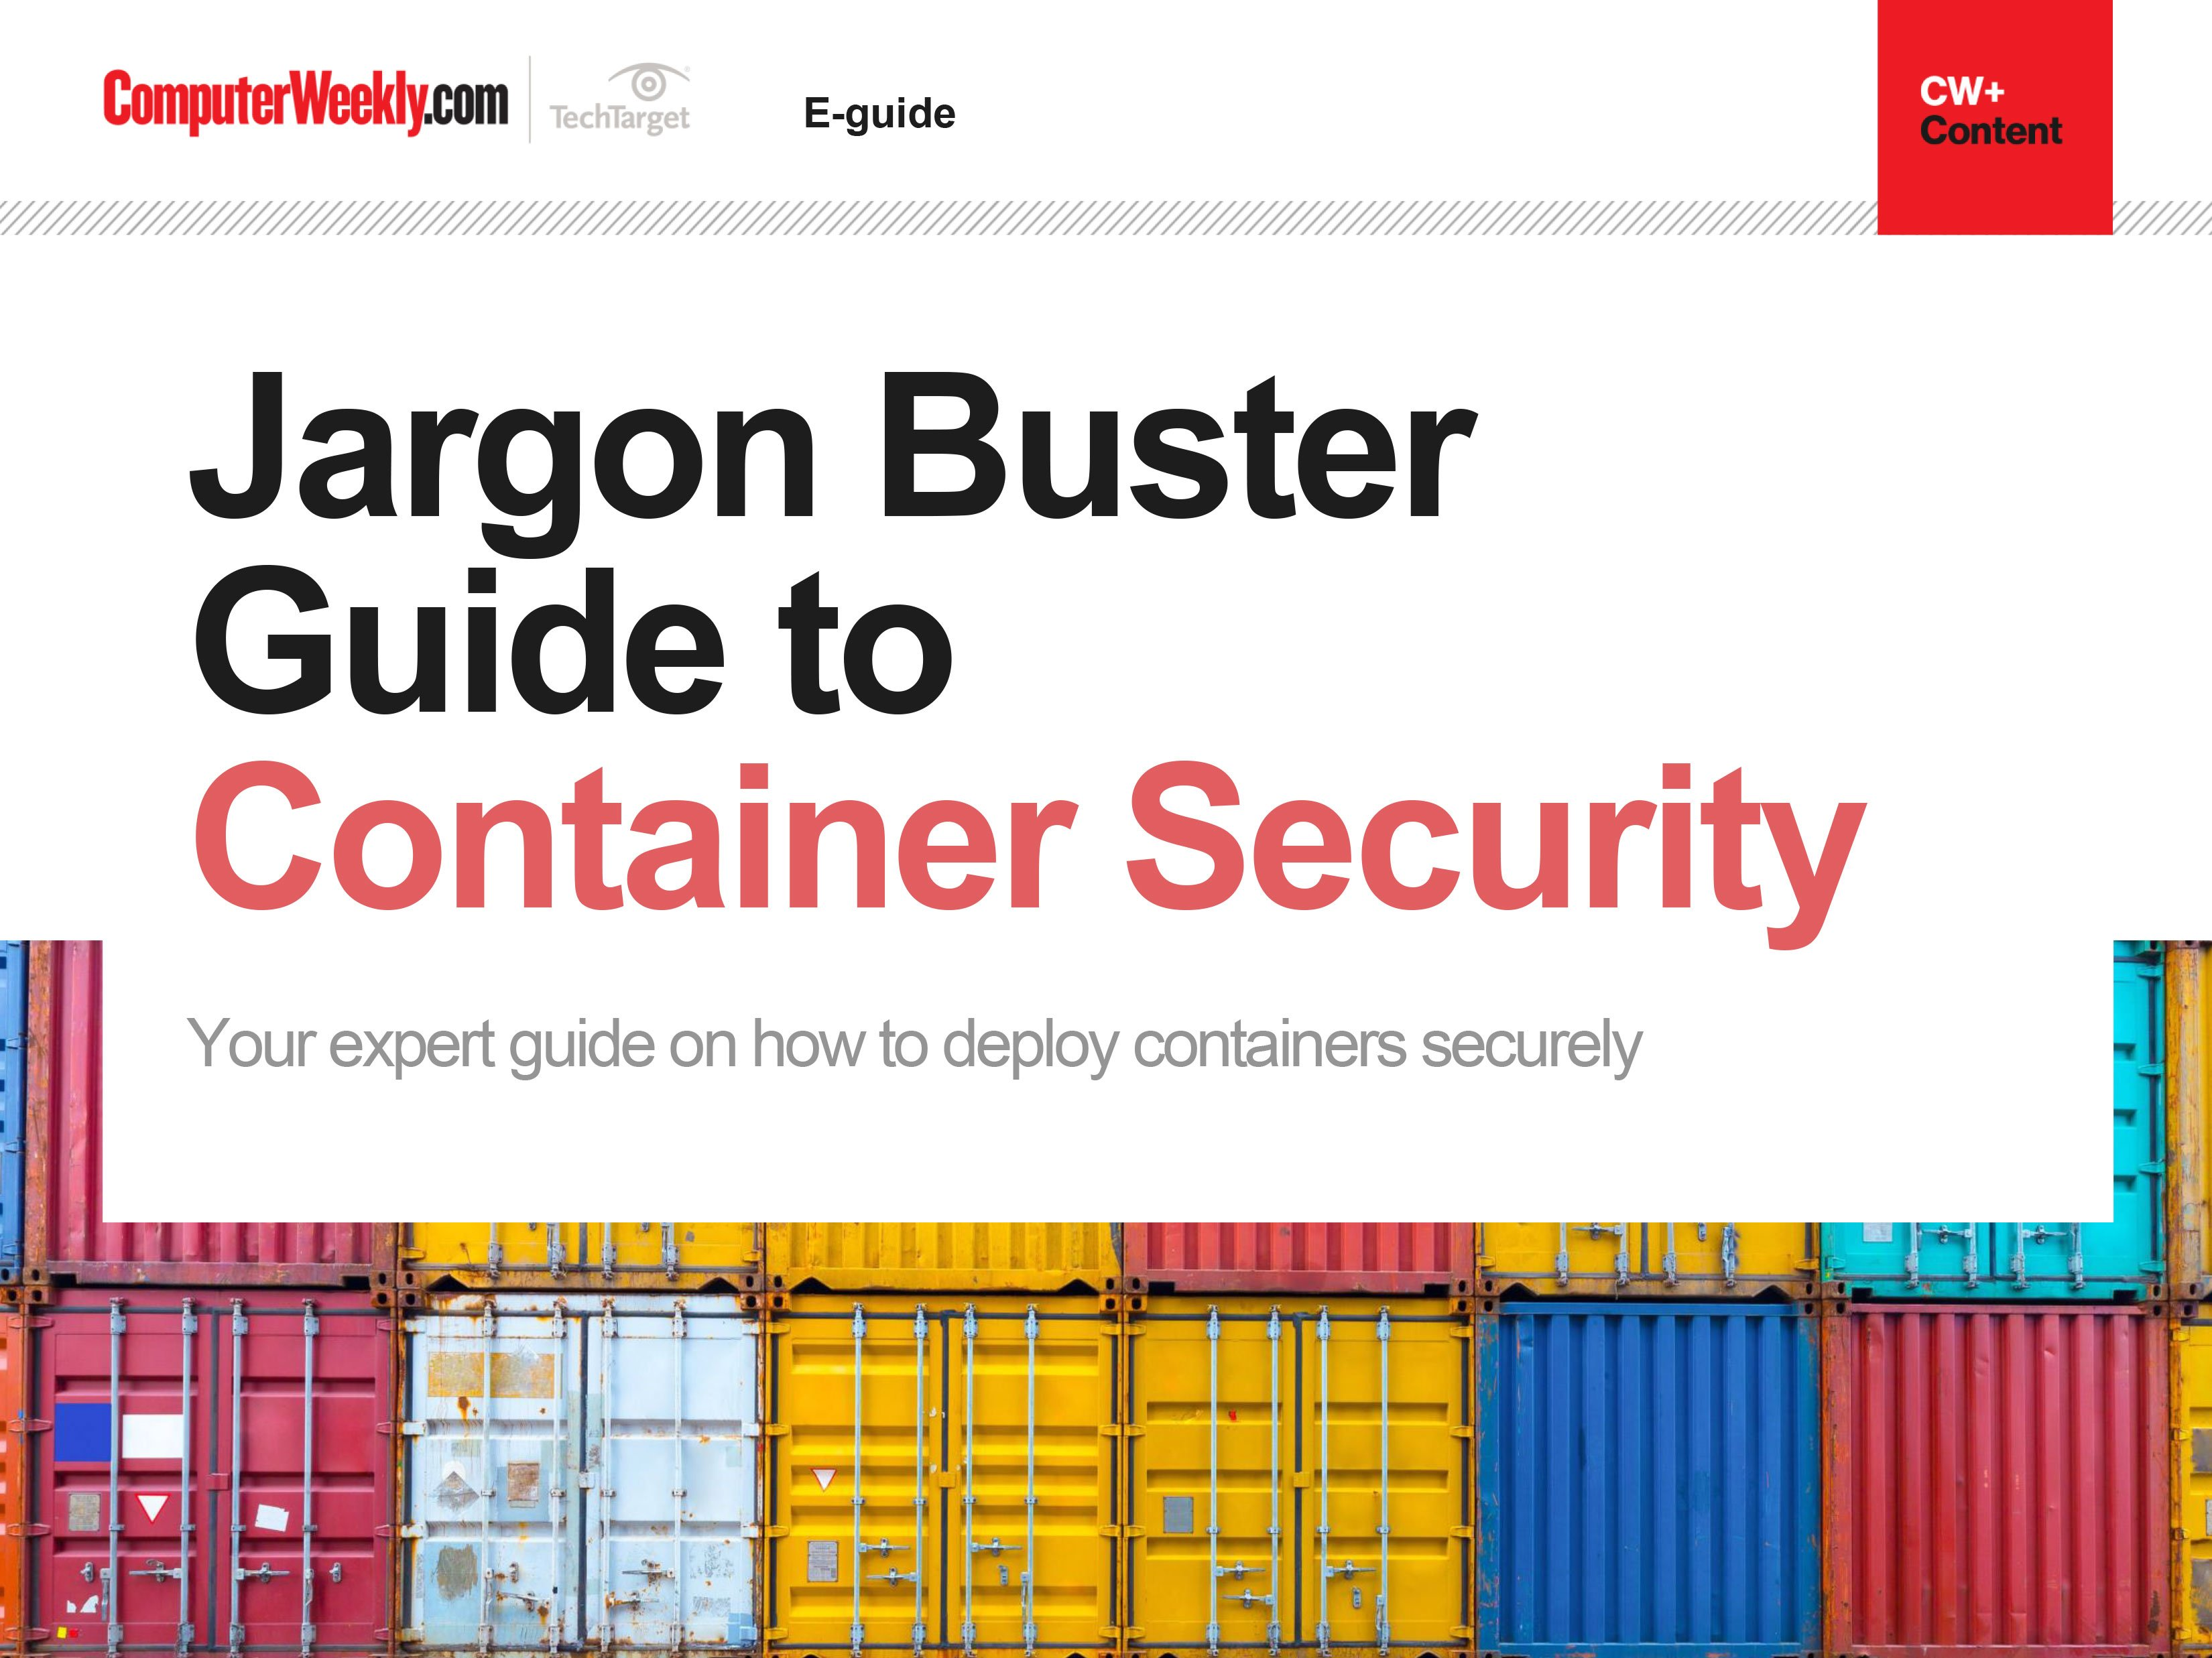 Jargon Buster Guide to Container Security